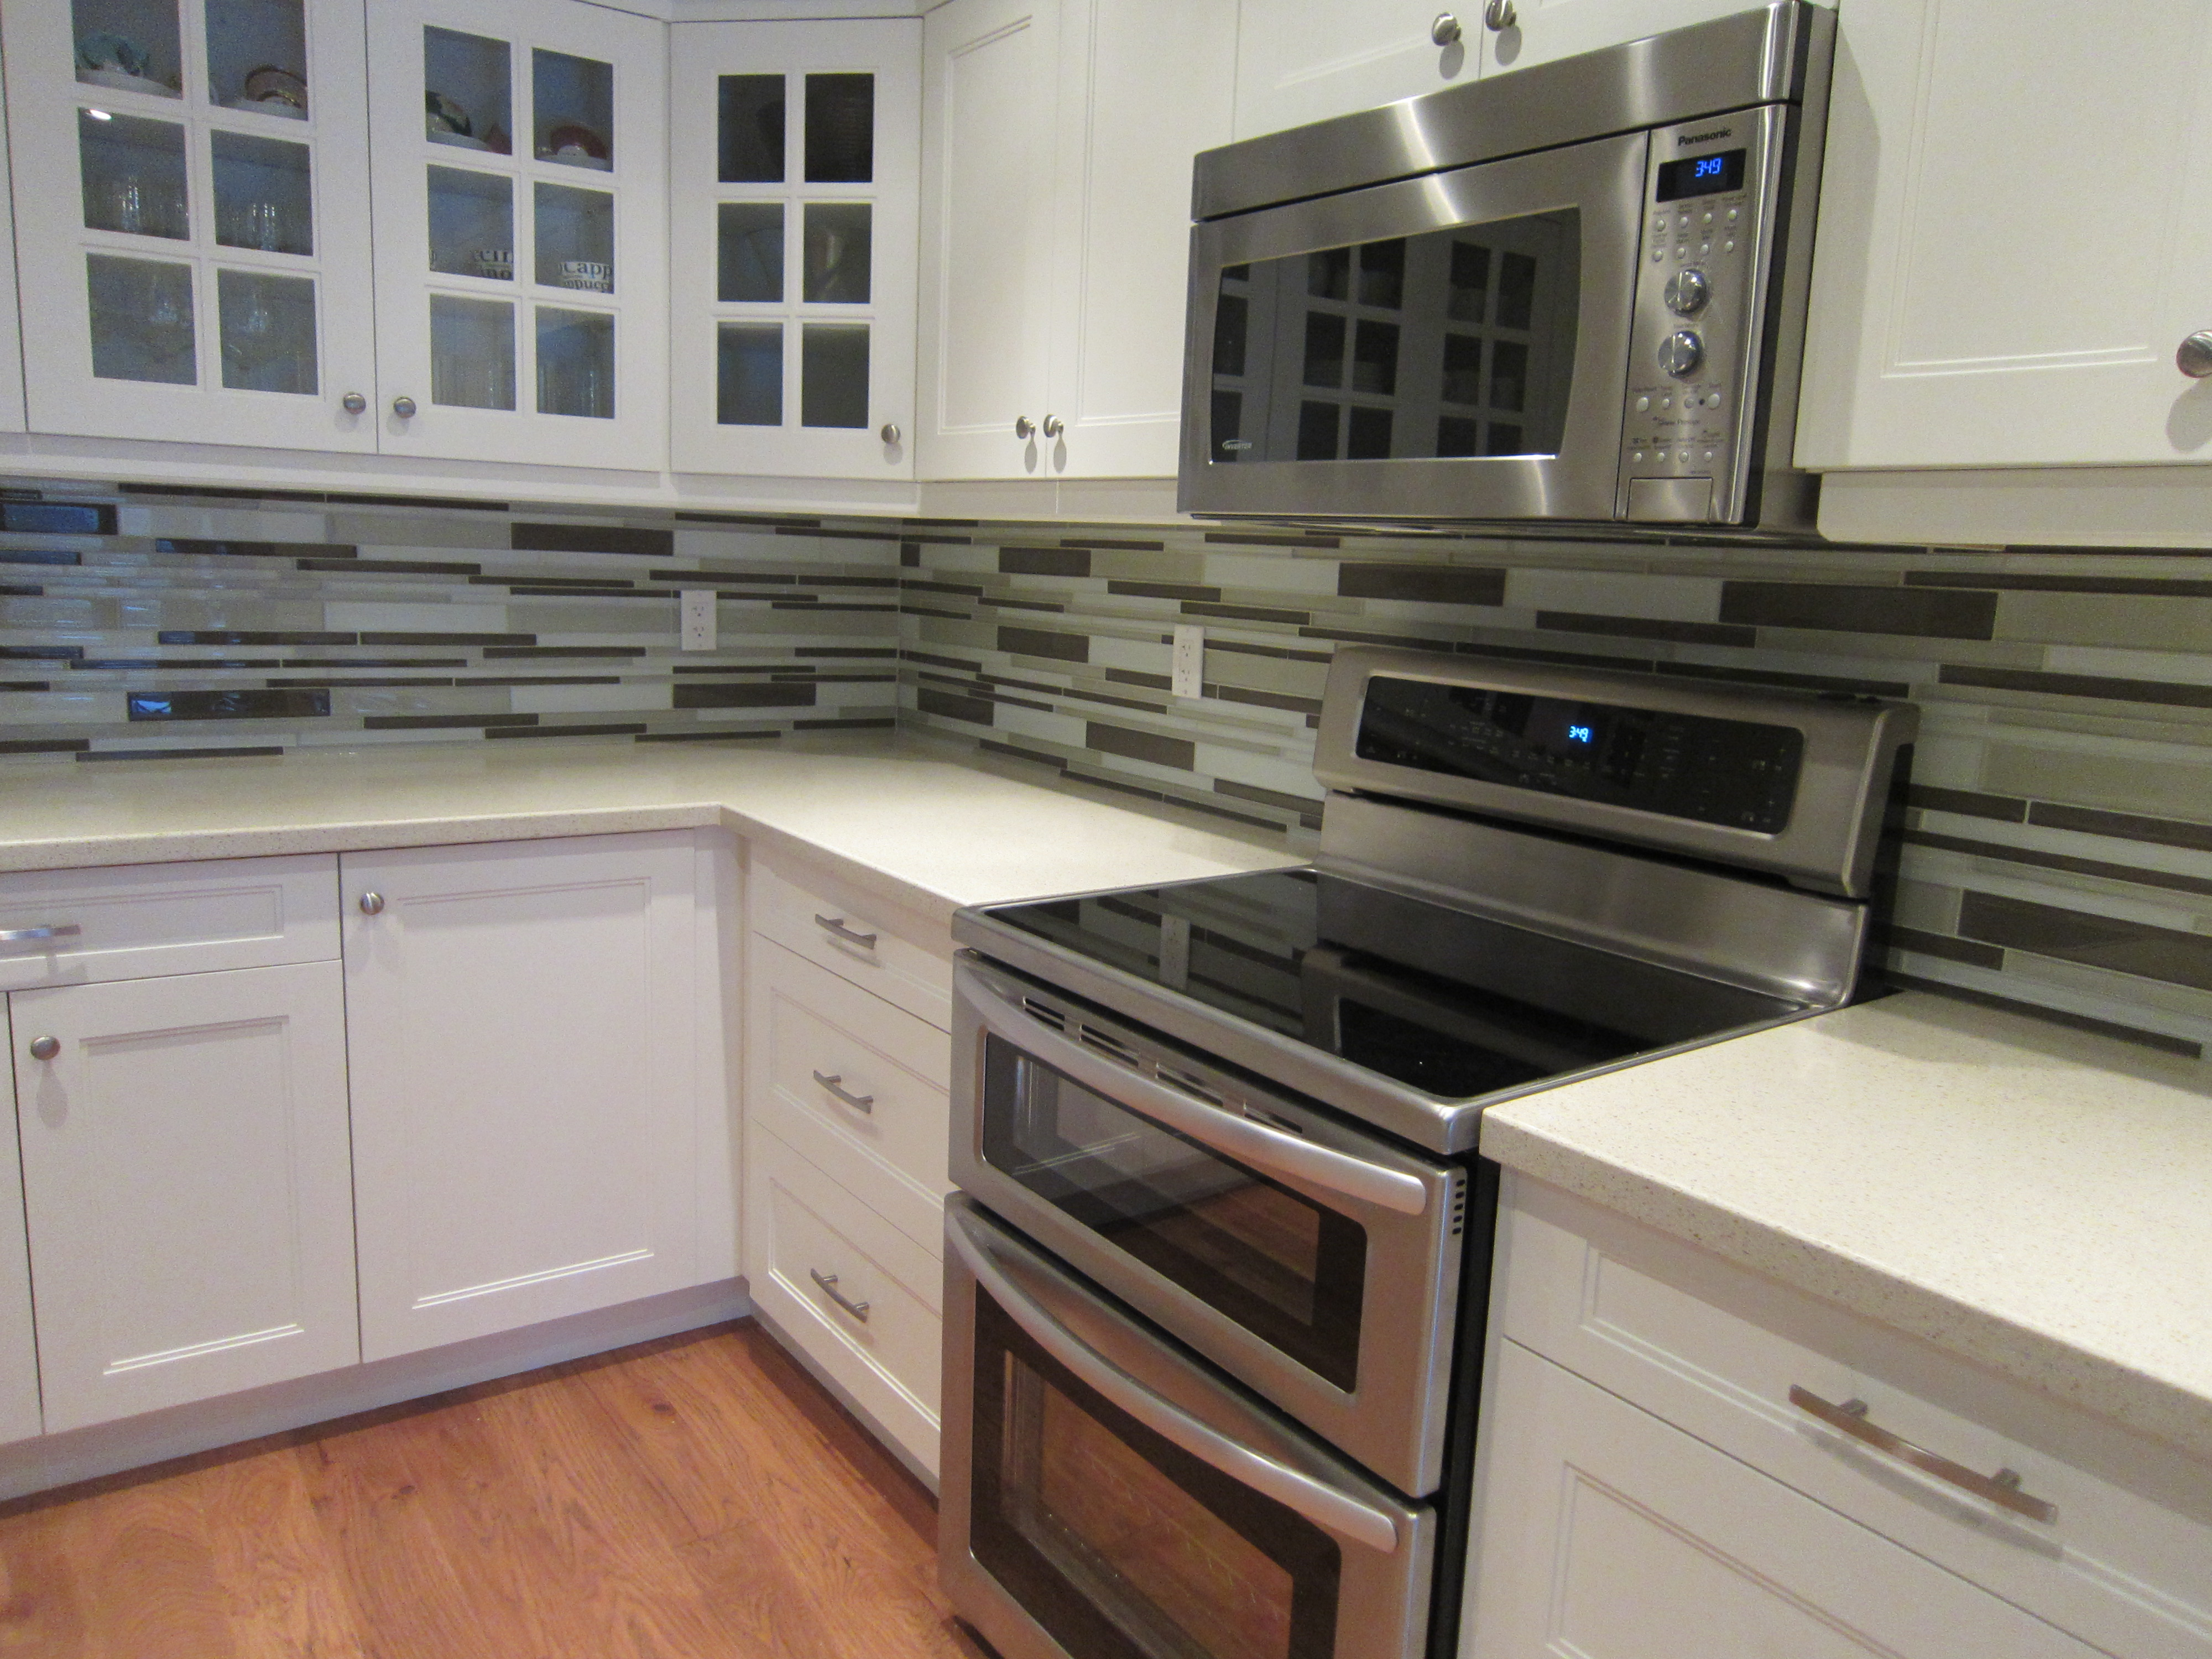 Renovated Kitchen Getting Organized During A Renovation We Organize Uwe Organize U